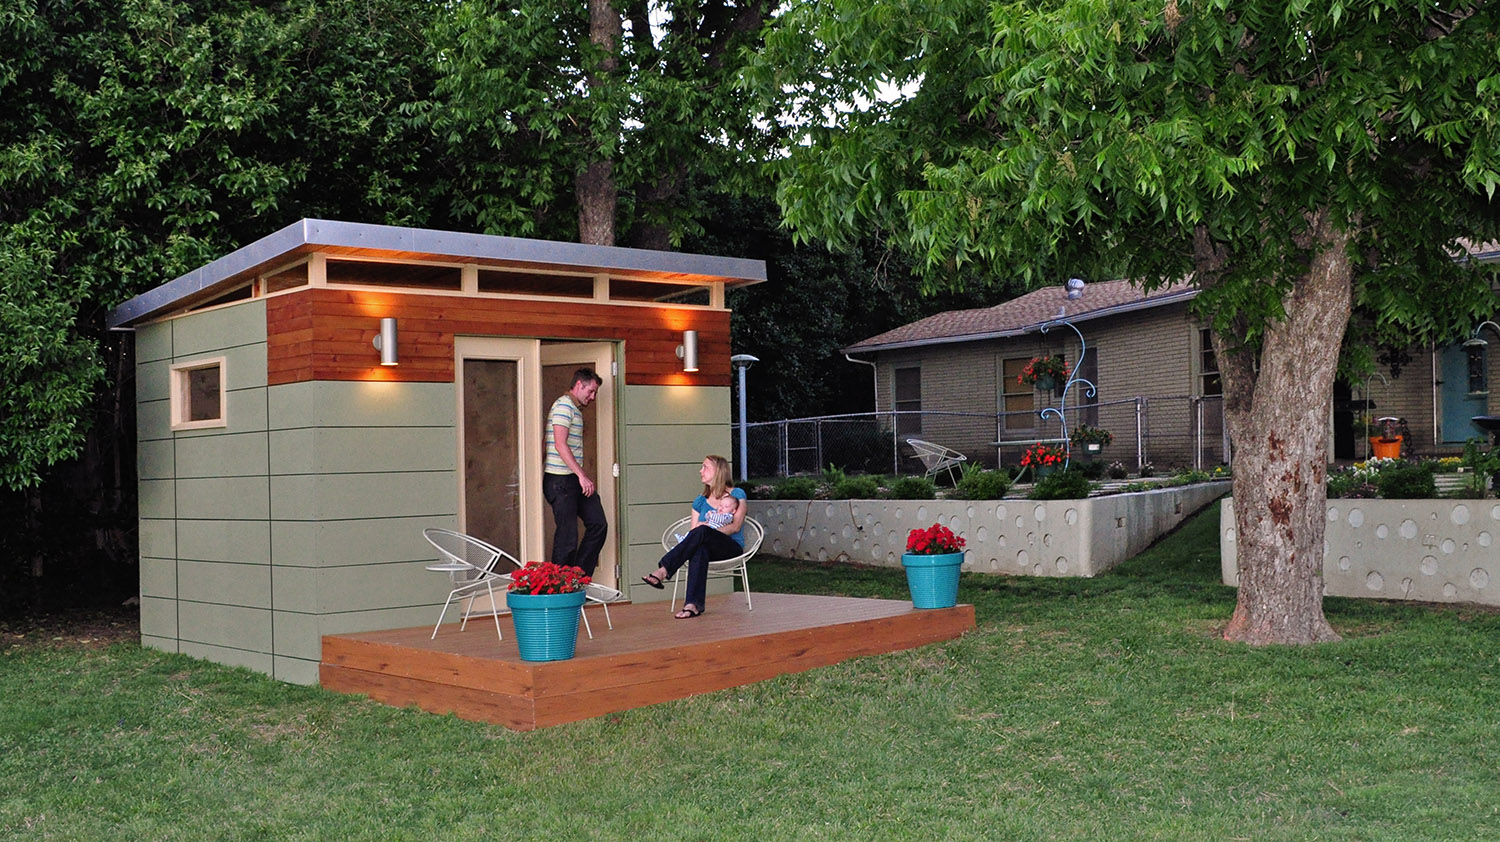 Kanga Room Systems - Backyard cabin kits